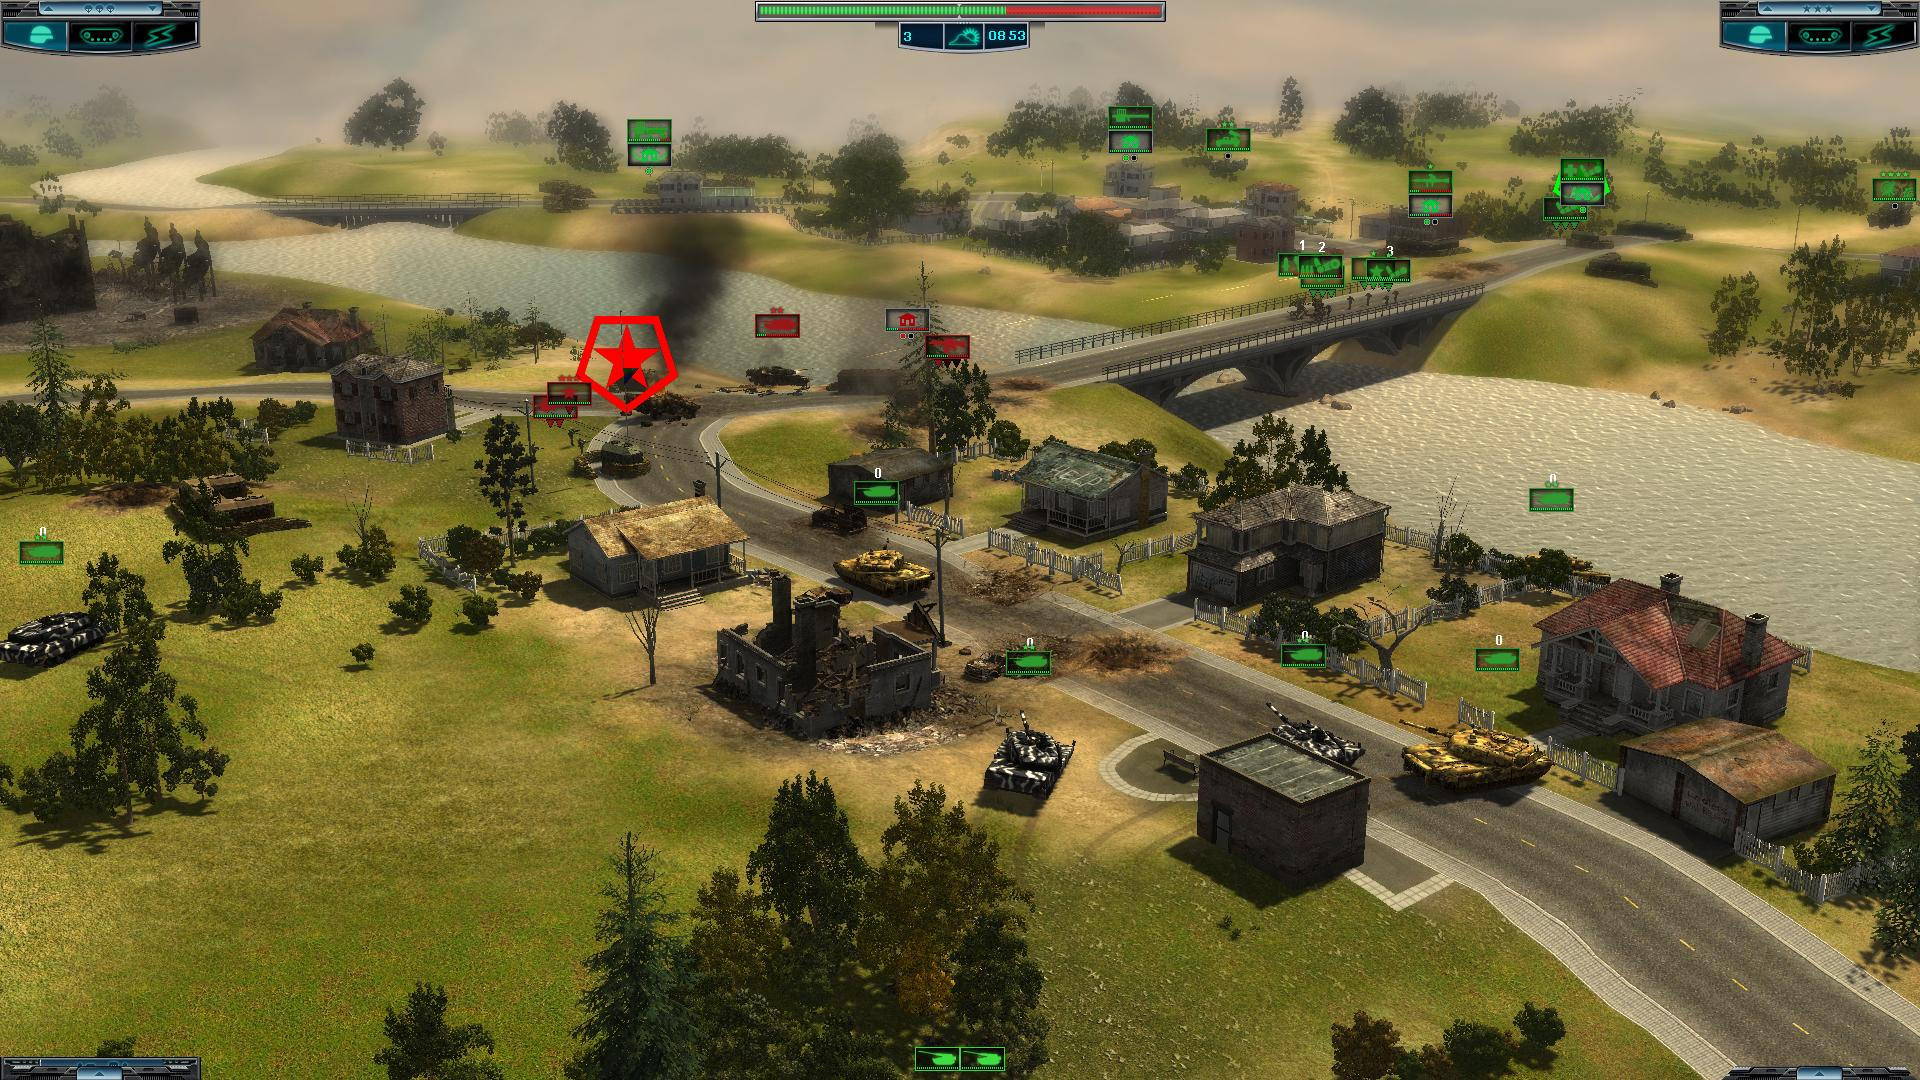 STRATEGY Elements of War MMORTS